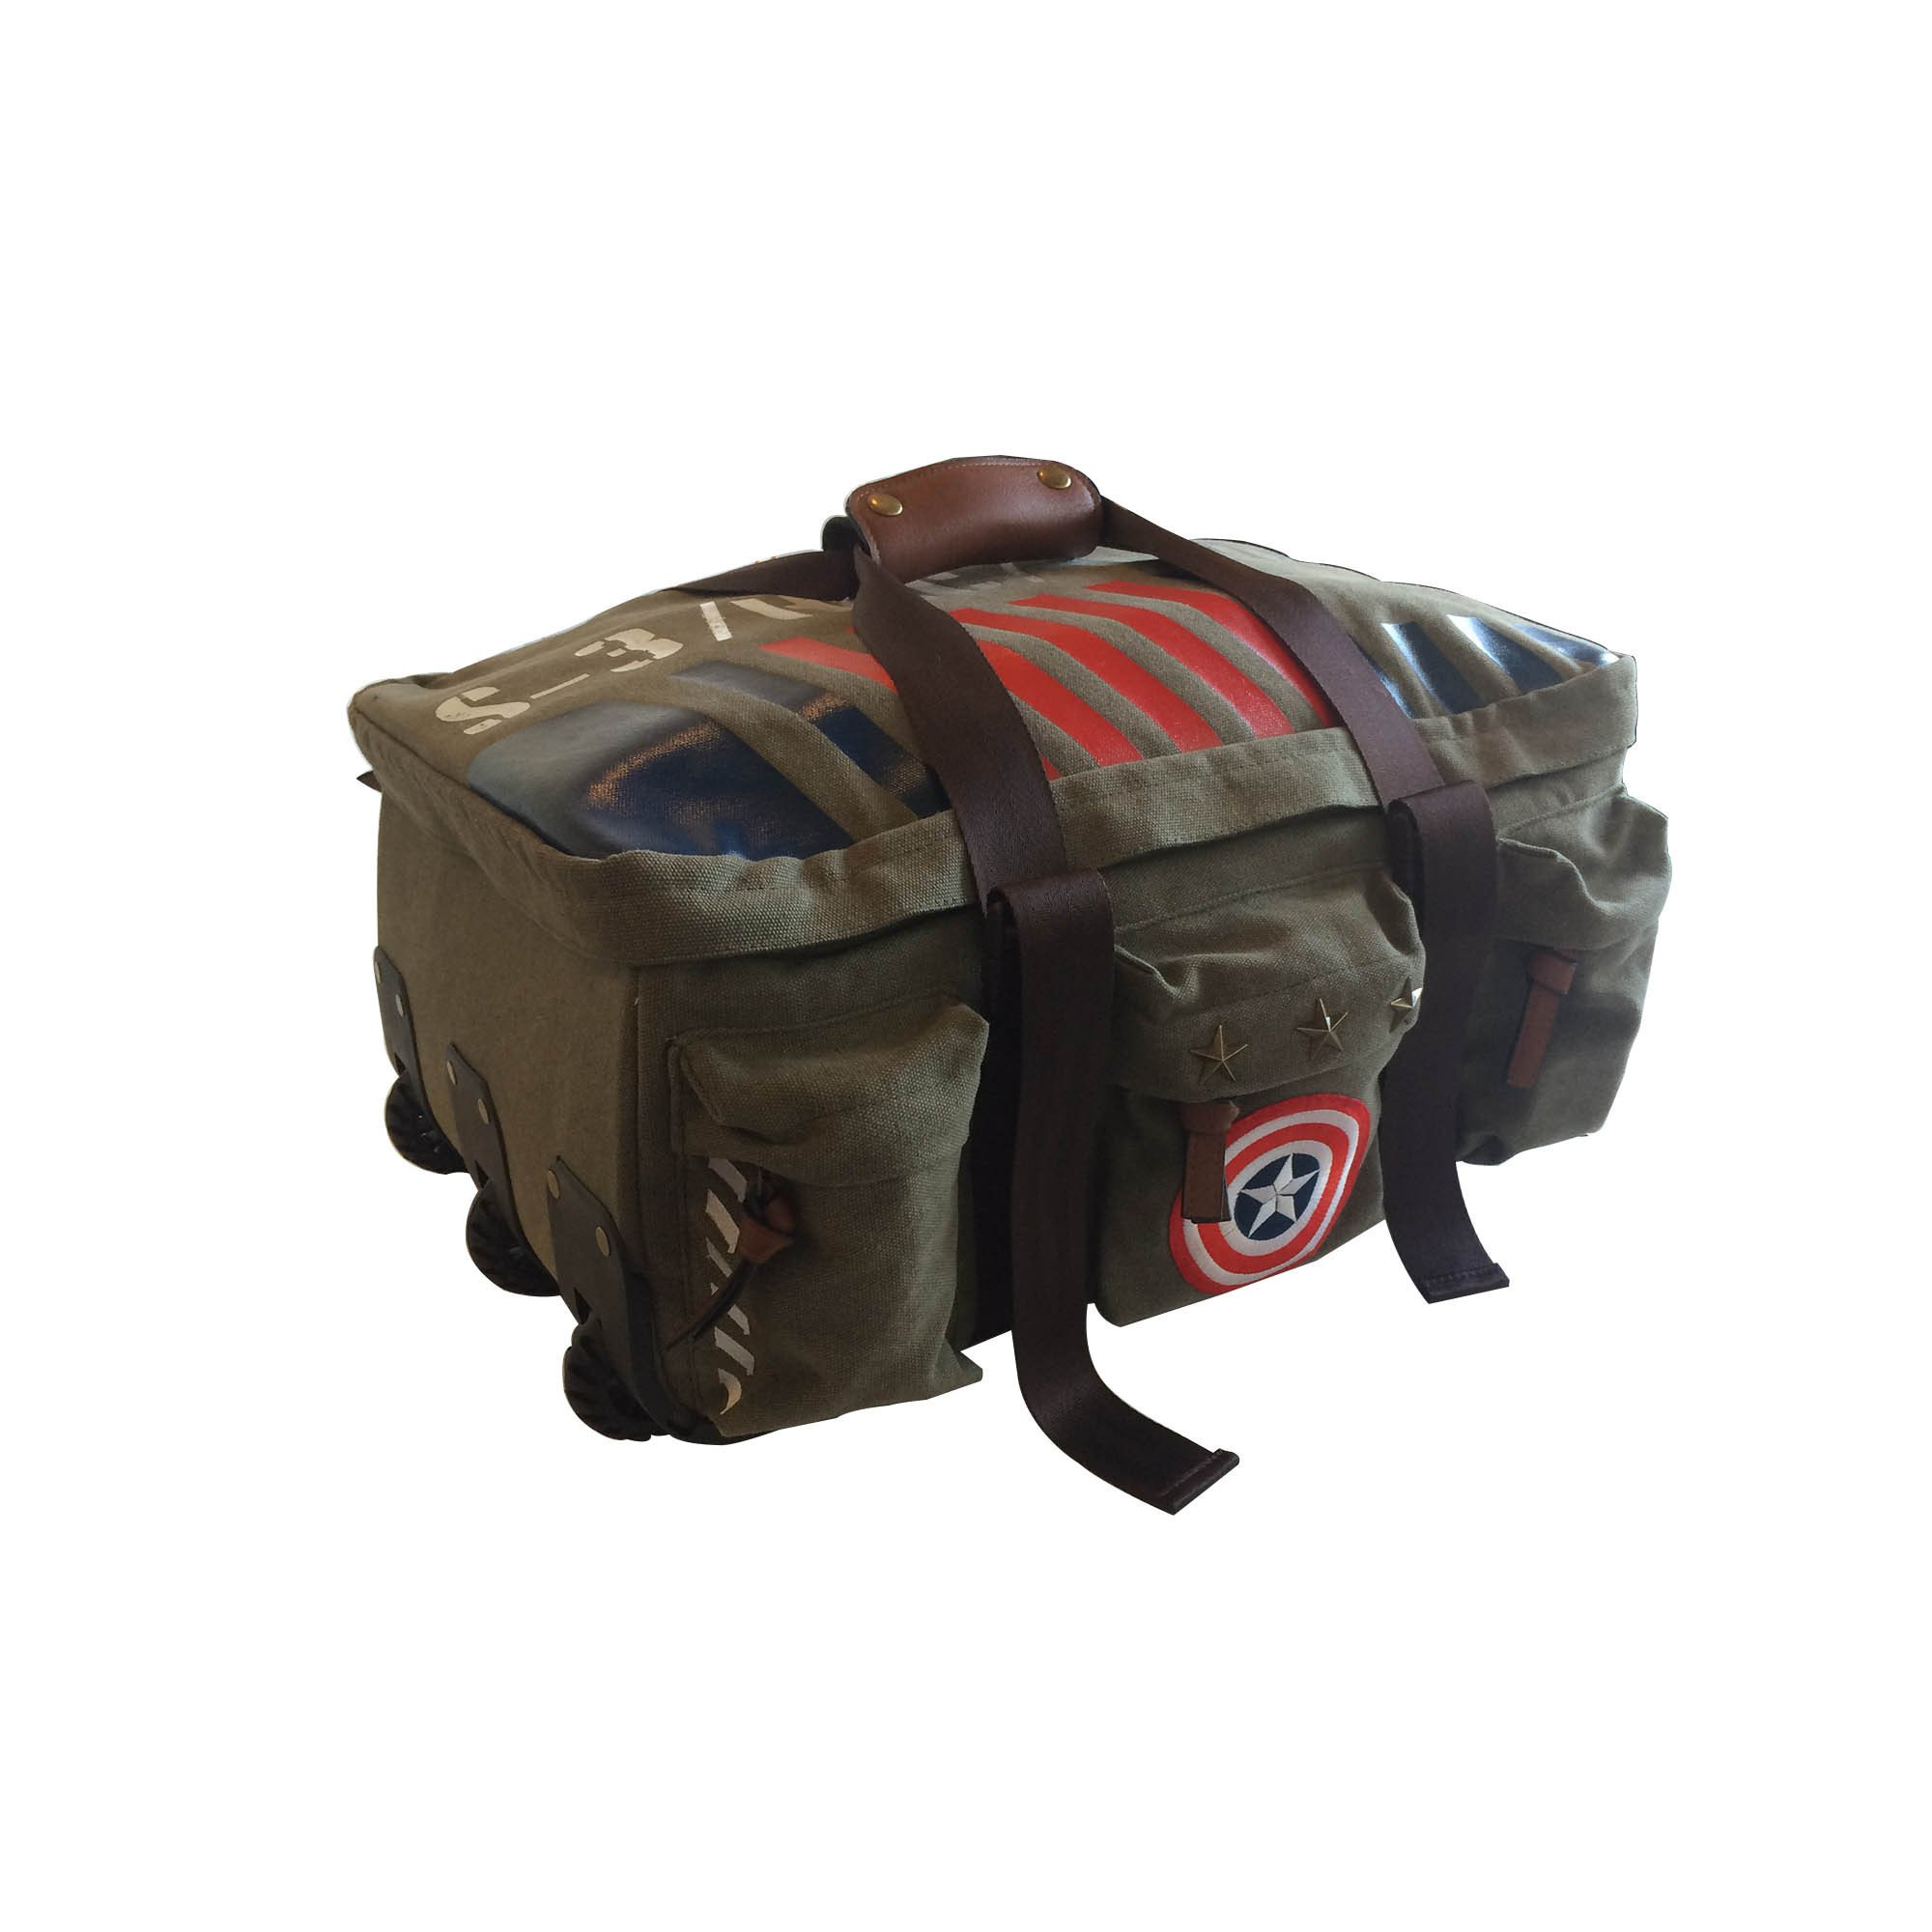 19-Inch Boys Captain America Military Rolling Spinner Duffel Bag, Stylish Marvel Superheroes Print Duffle, Oversized Travel Luggage with Wheels, Vintage-Style Lightweight, Fashionable, Green Red Blue